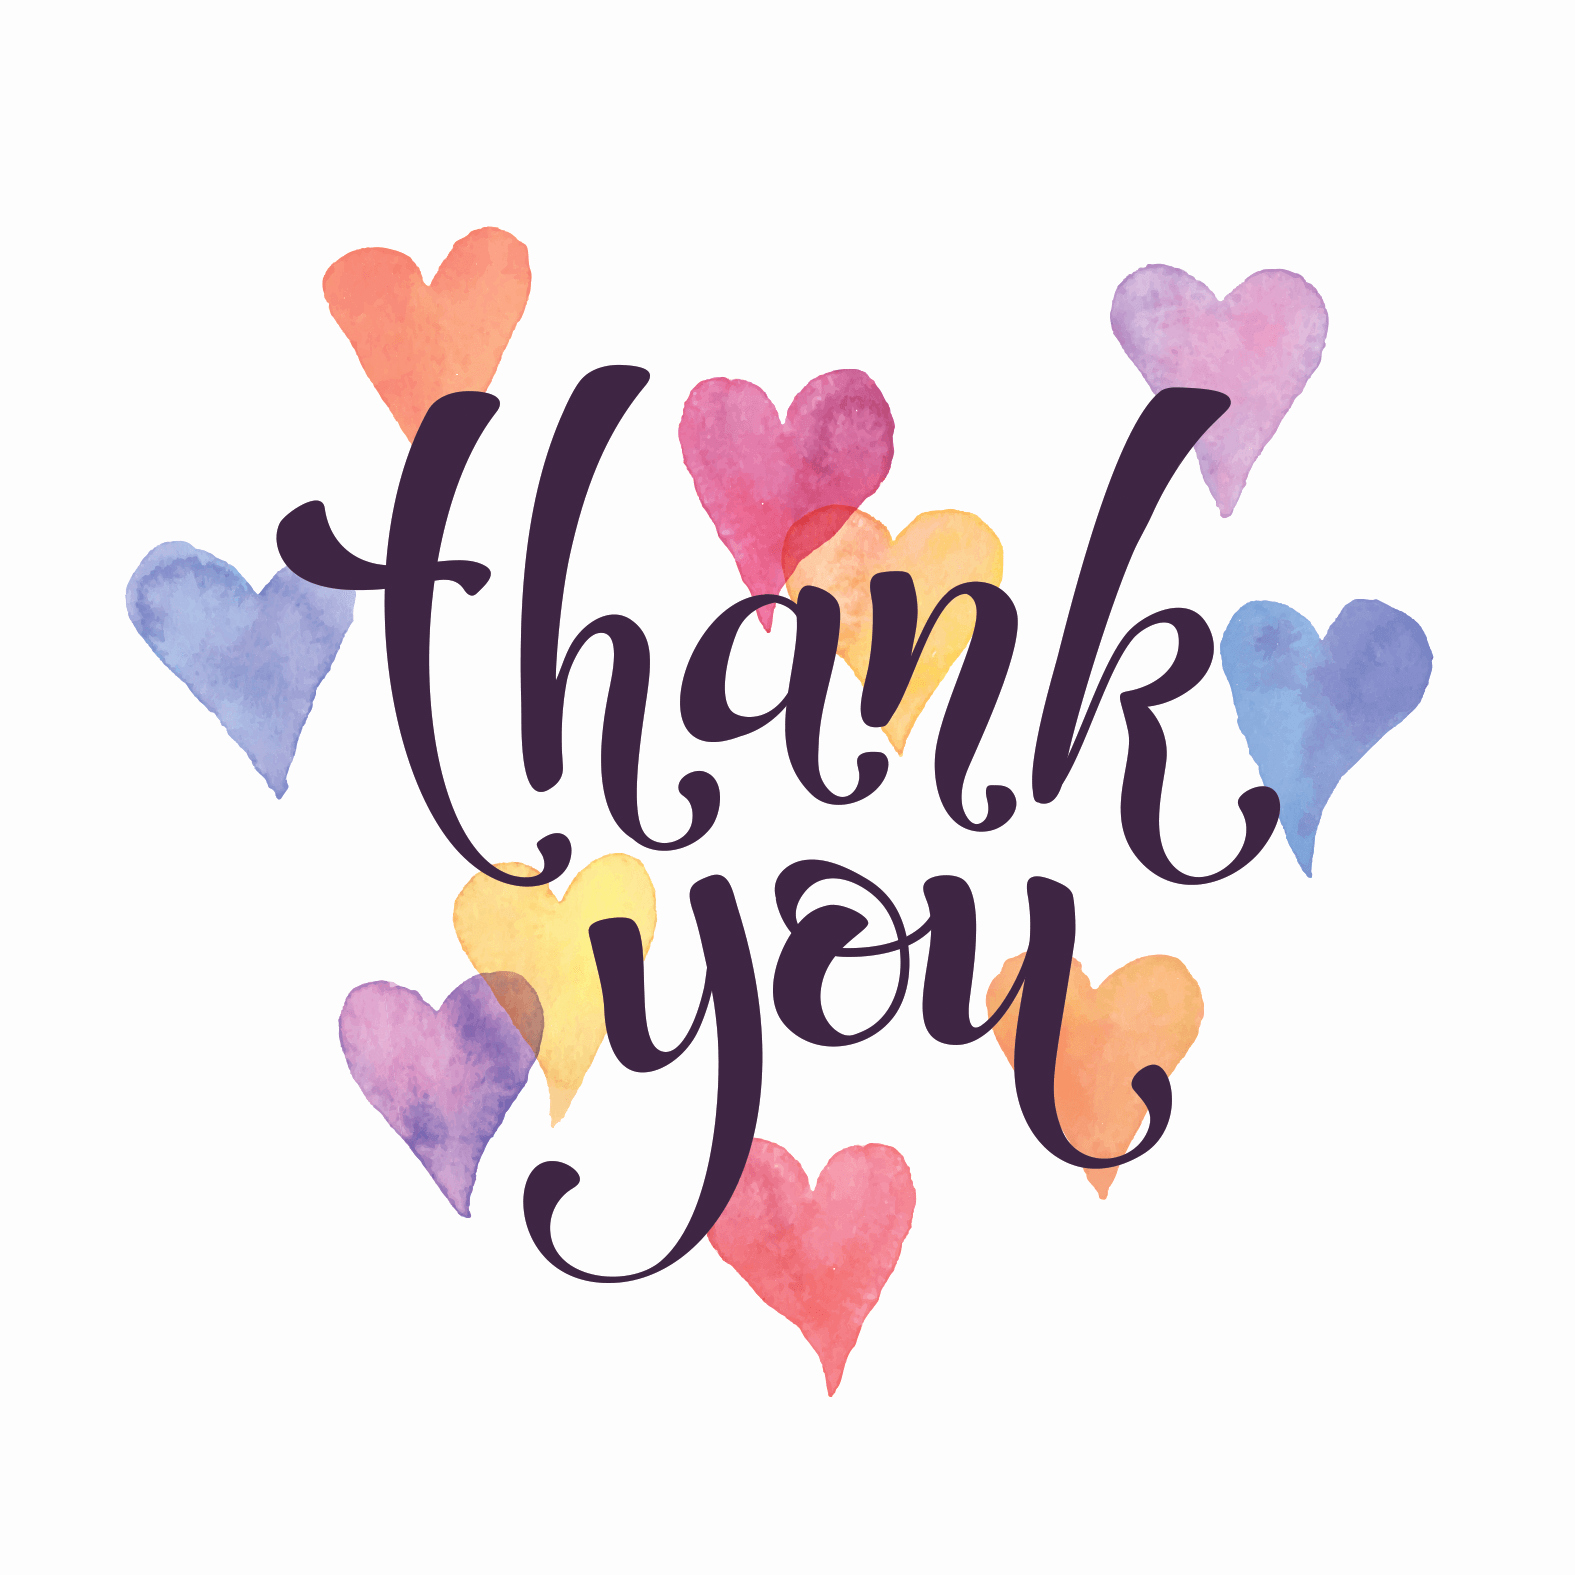 Thank You Cards Template Awesome Warmed Heart Thank You Card Template Free